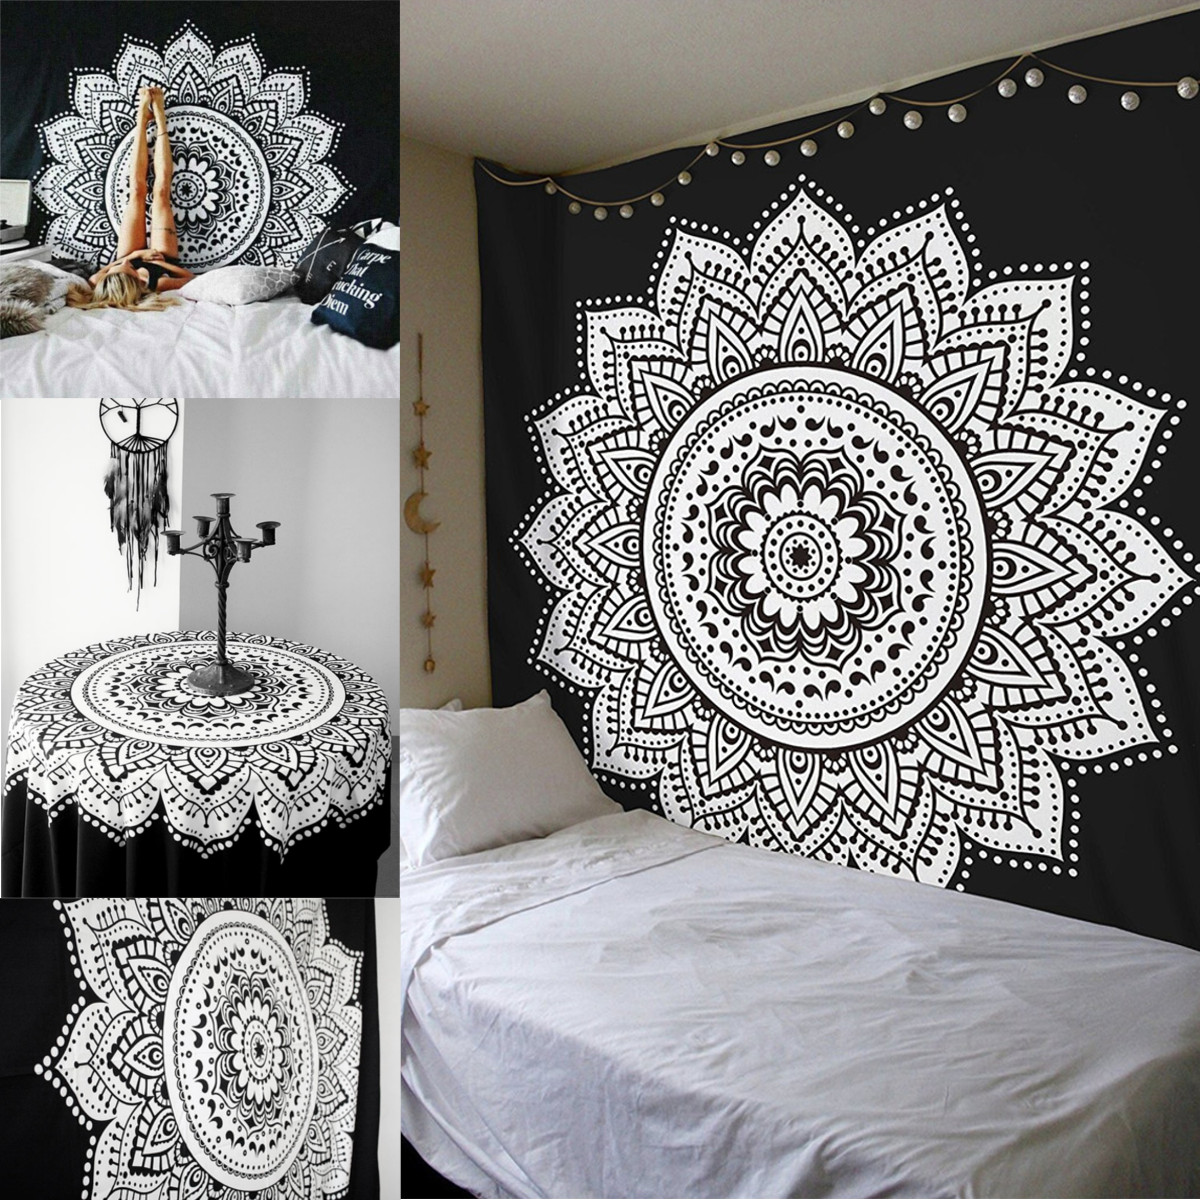 Dorm Decor Wall Hanging Hippie Tapestry Bohemian Bedspread Indian Ethnic Mandala Father's Day gift by